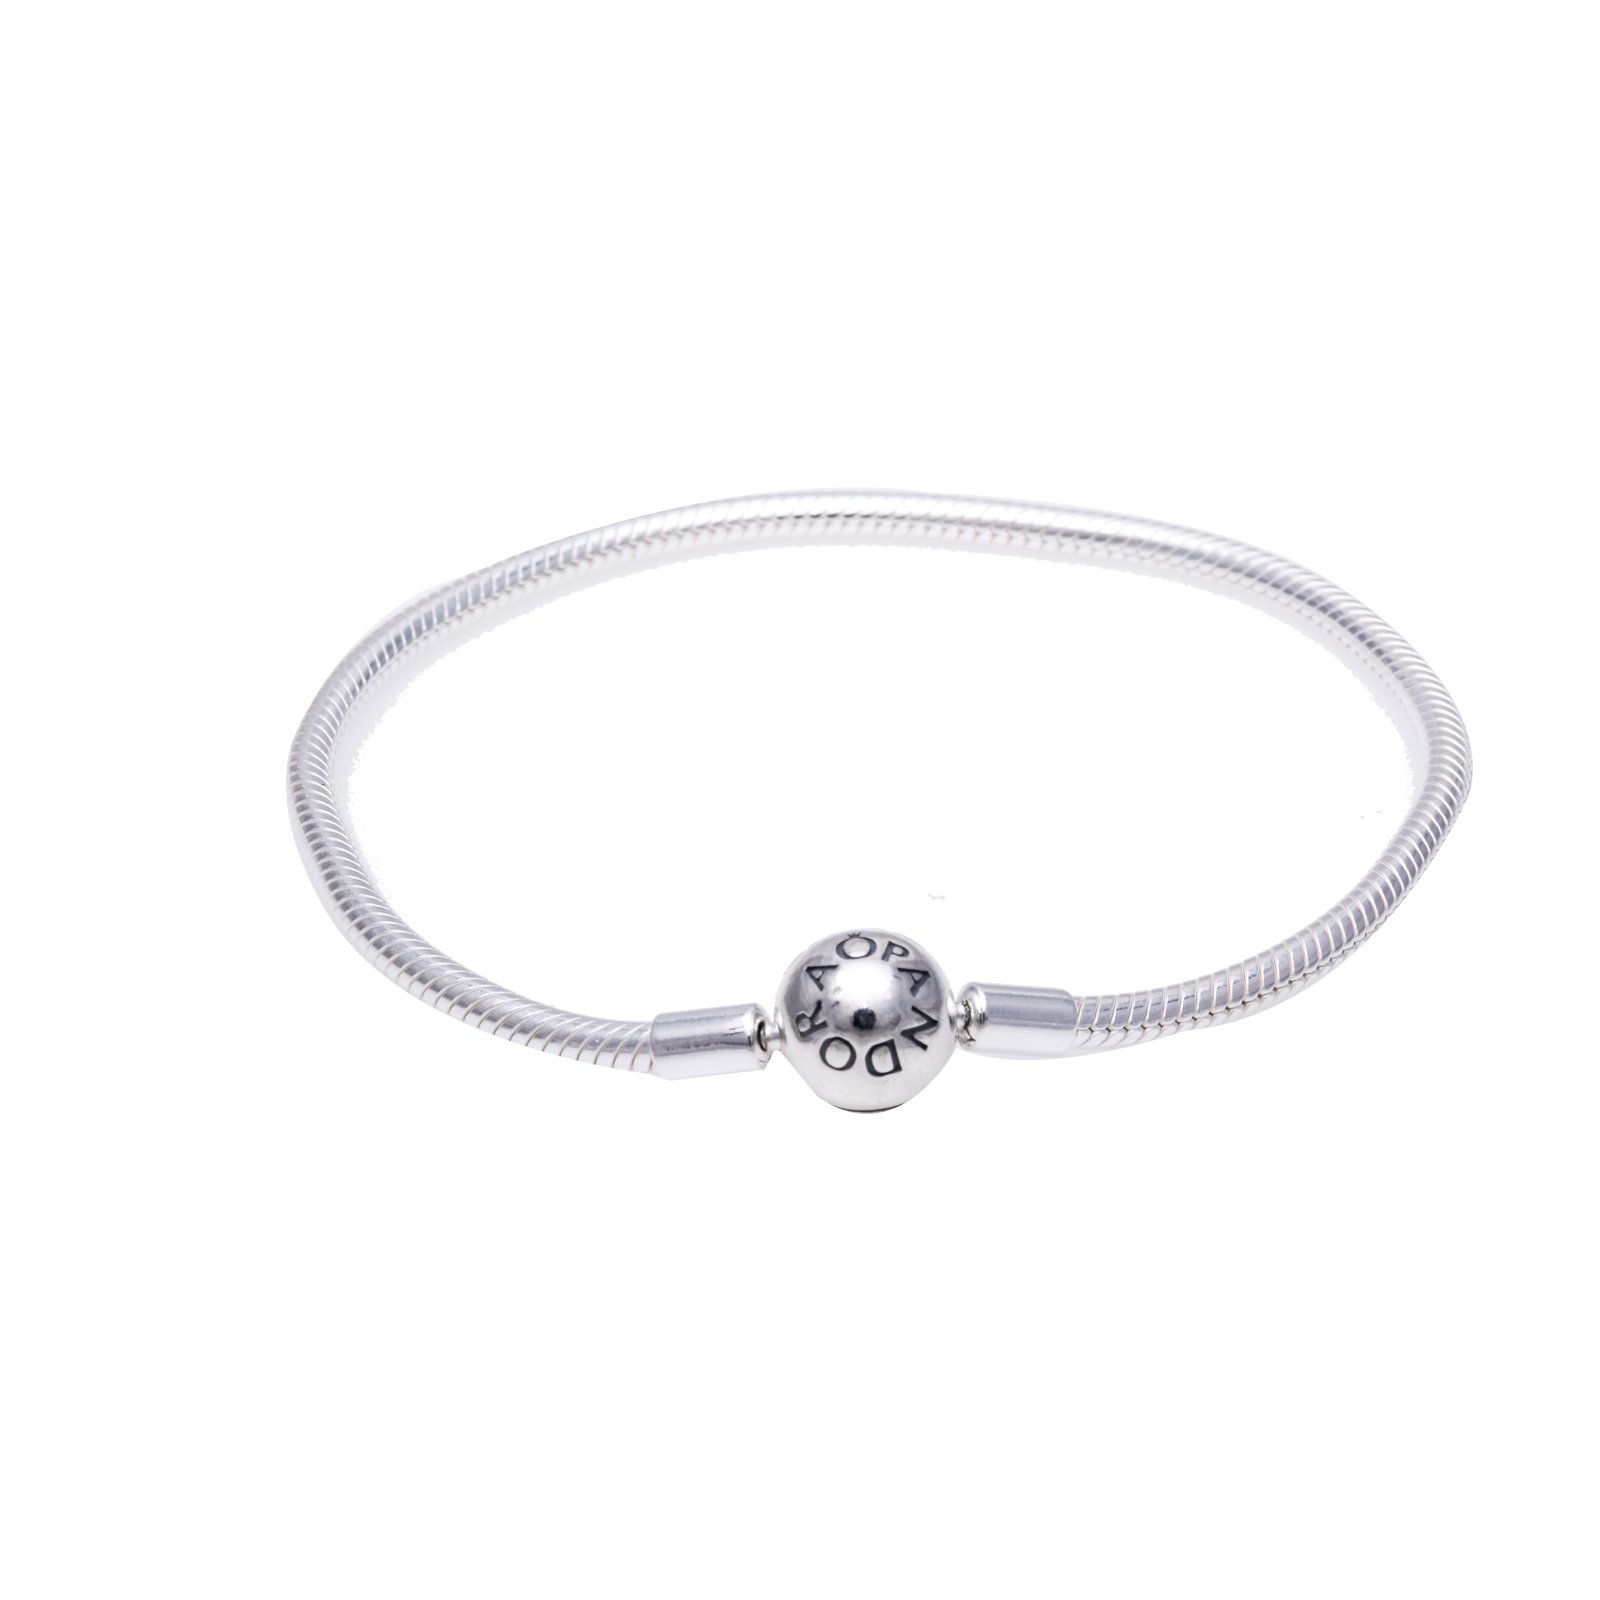 Pandora-590728-19-Sterling-Silver-Smooth-Clasp-Bracelet-75-in